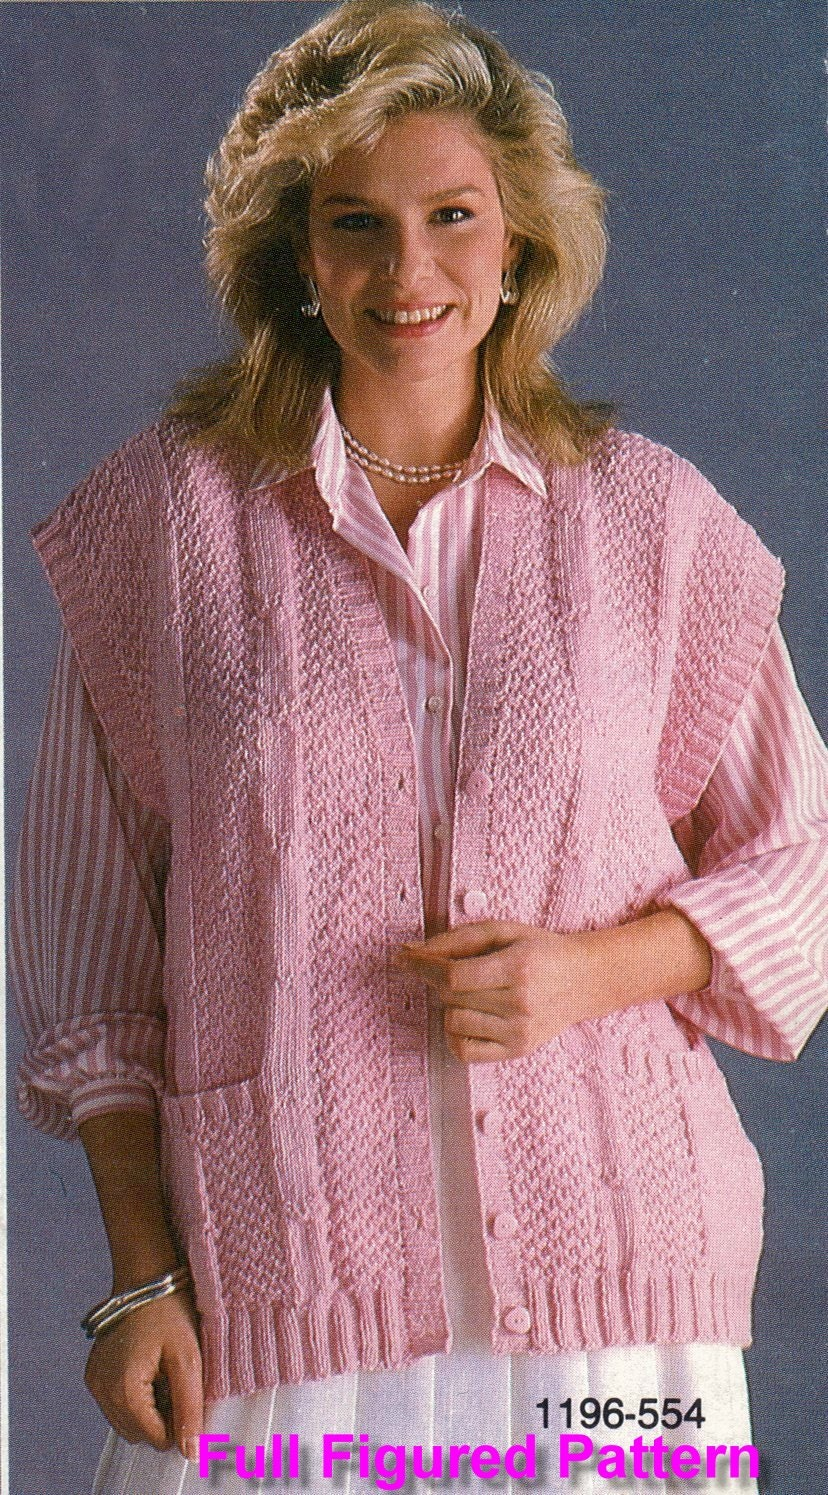 Knitting pattern full figured knitted sweater pattern plus this is a digital file bankloansurffo Gallery